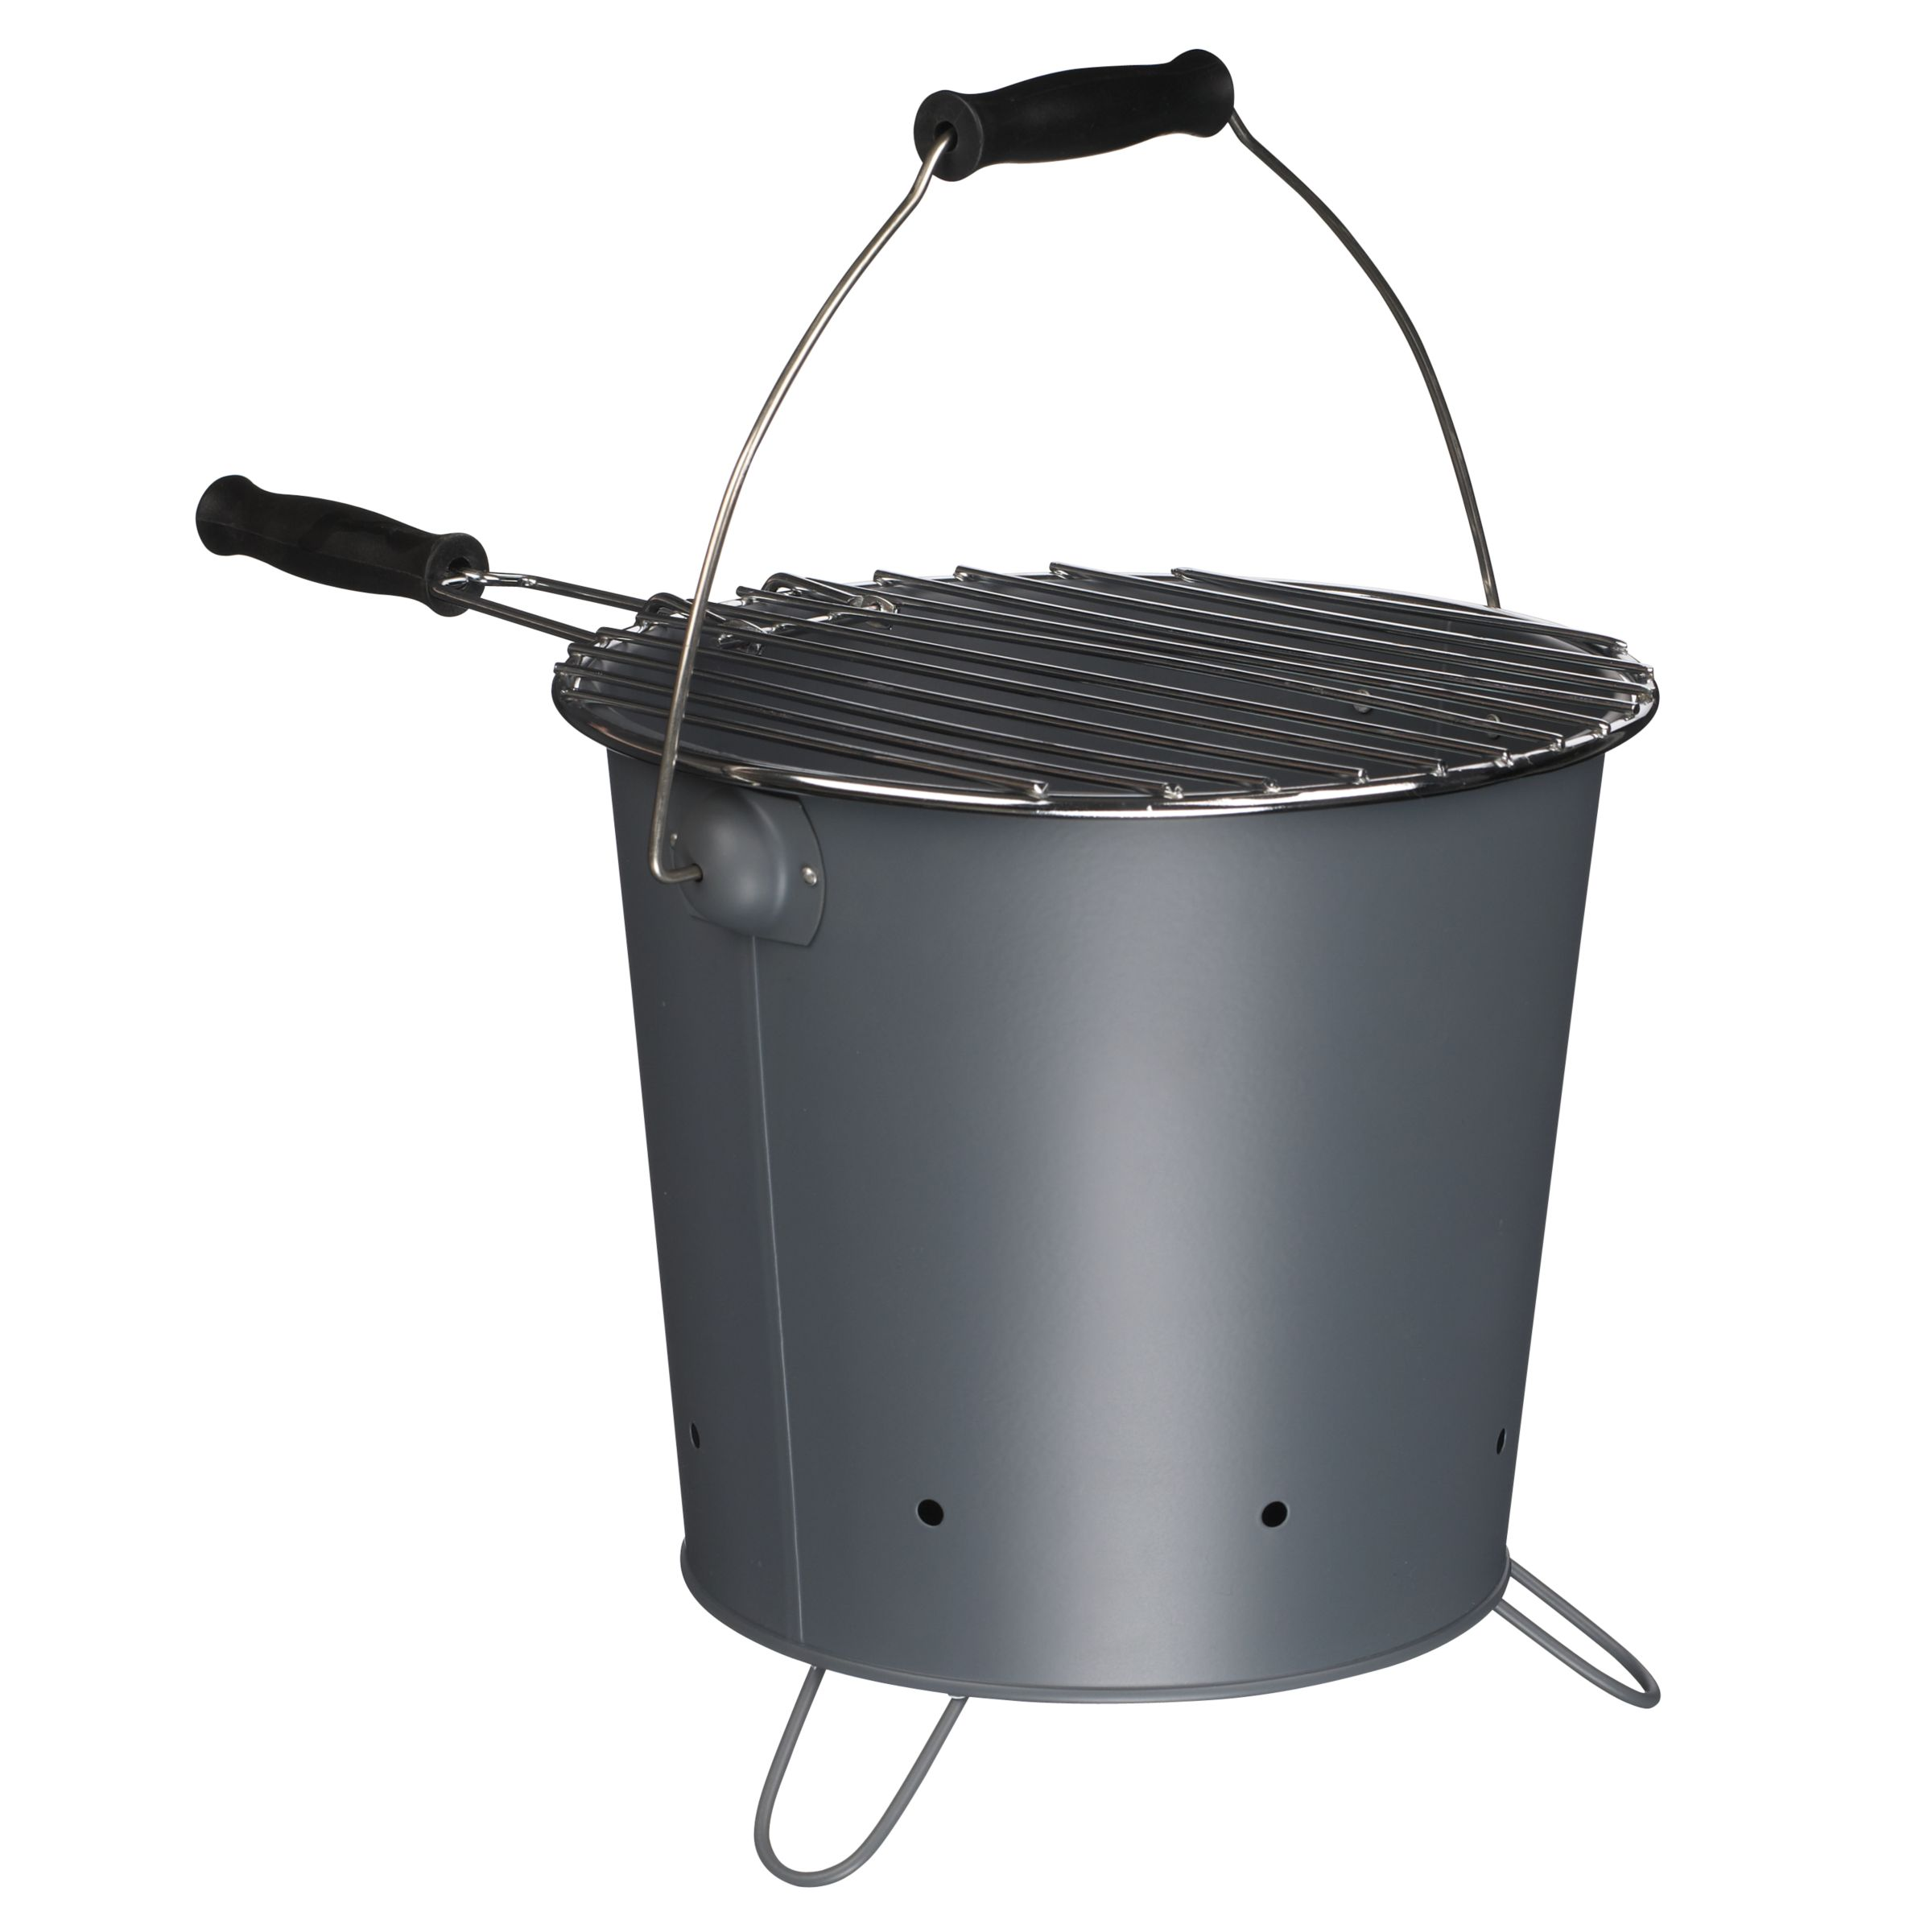 John Lewis Barbecue Bucket, Steel Grey